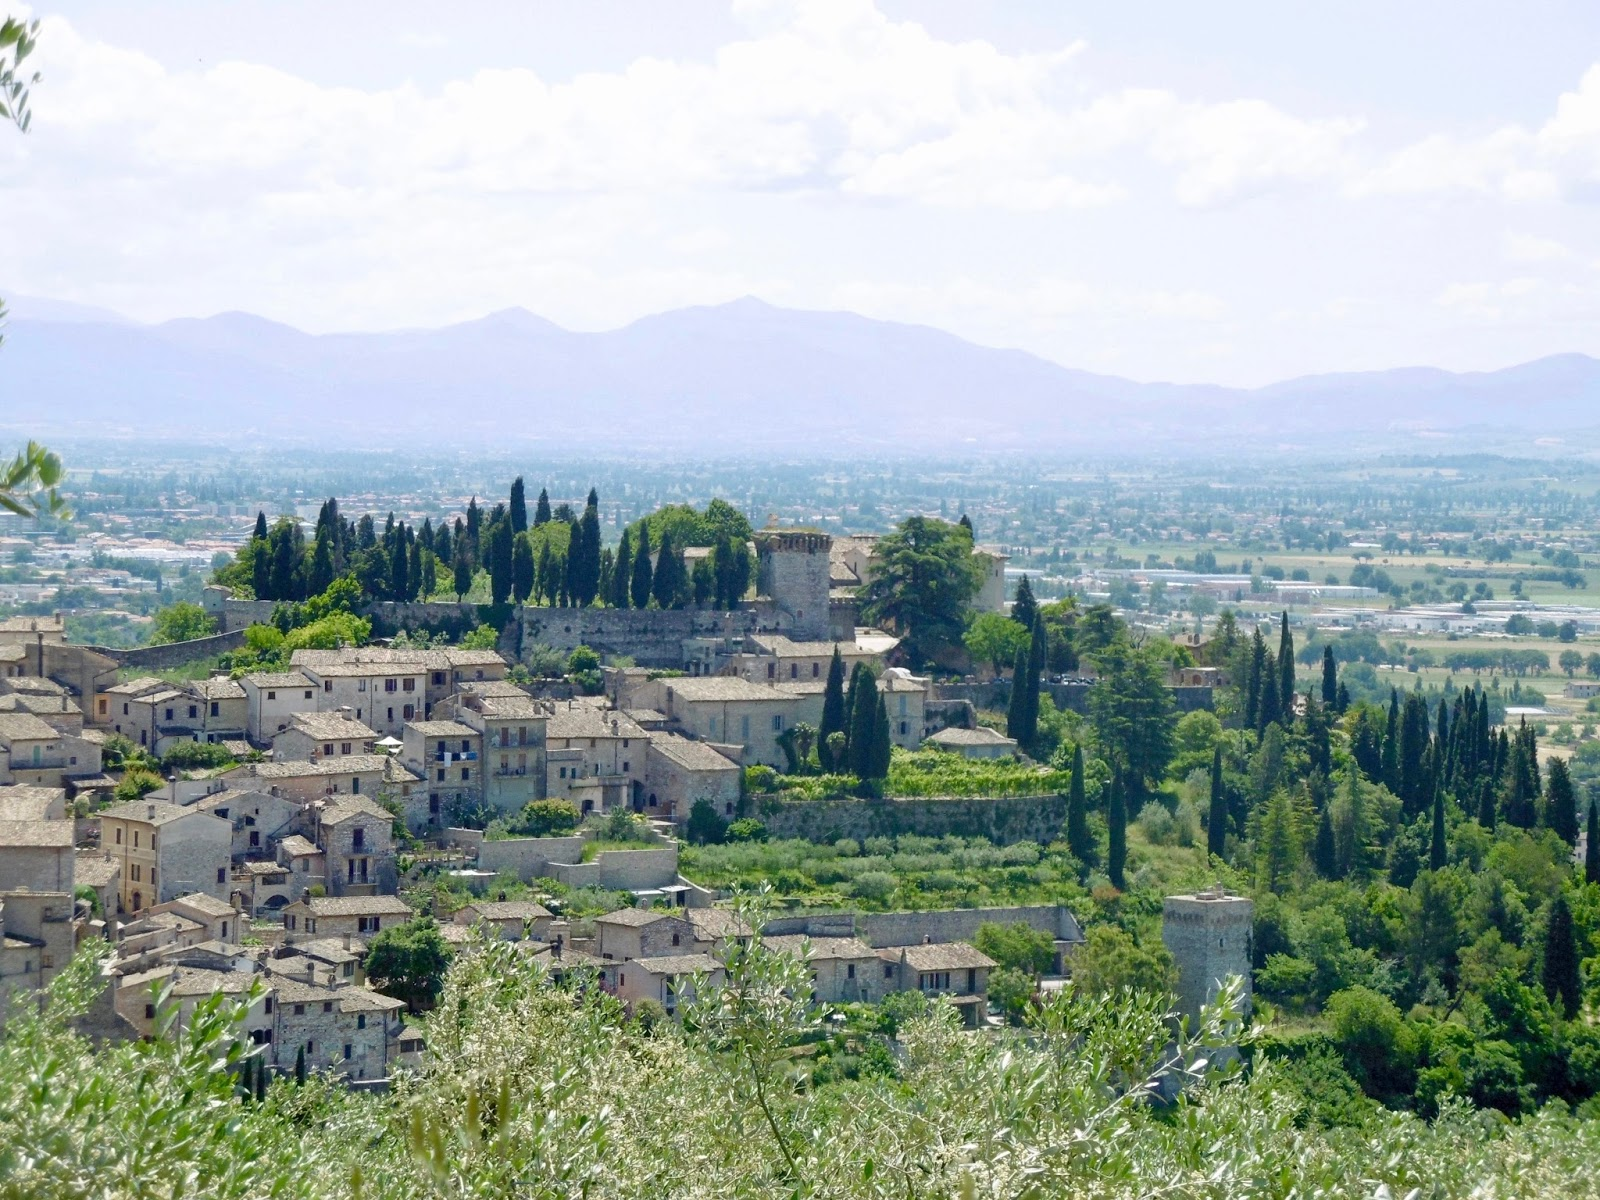 The view from the stunning mountain town of Spello in Italy showing the old buildings within the walled city